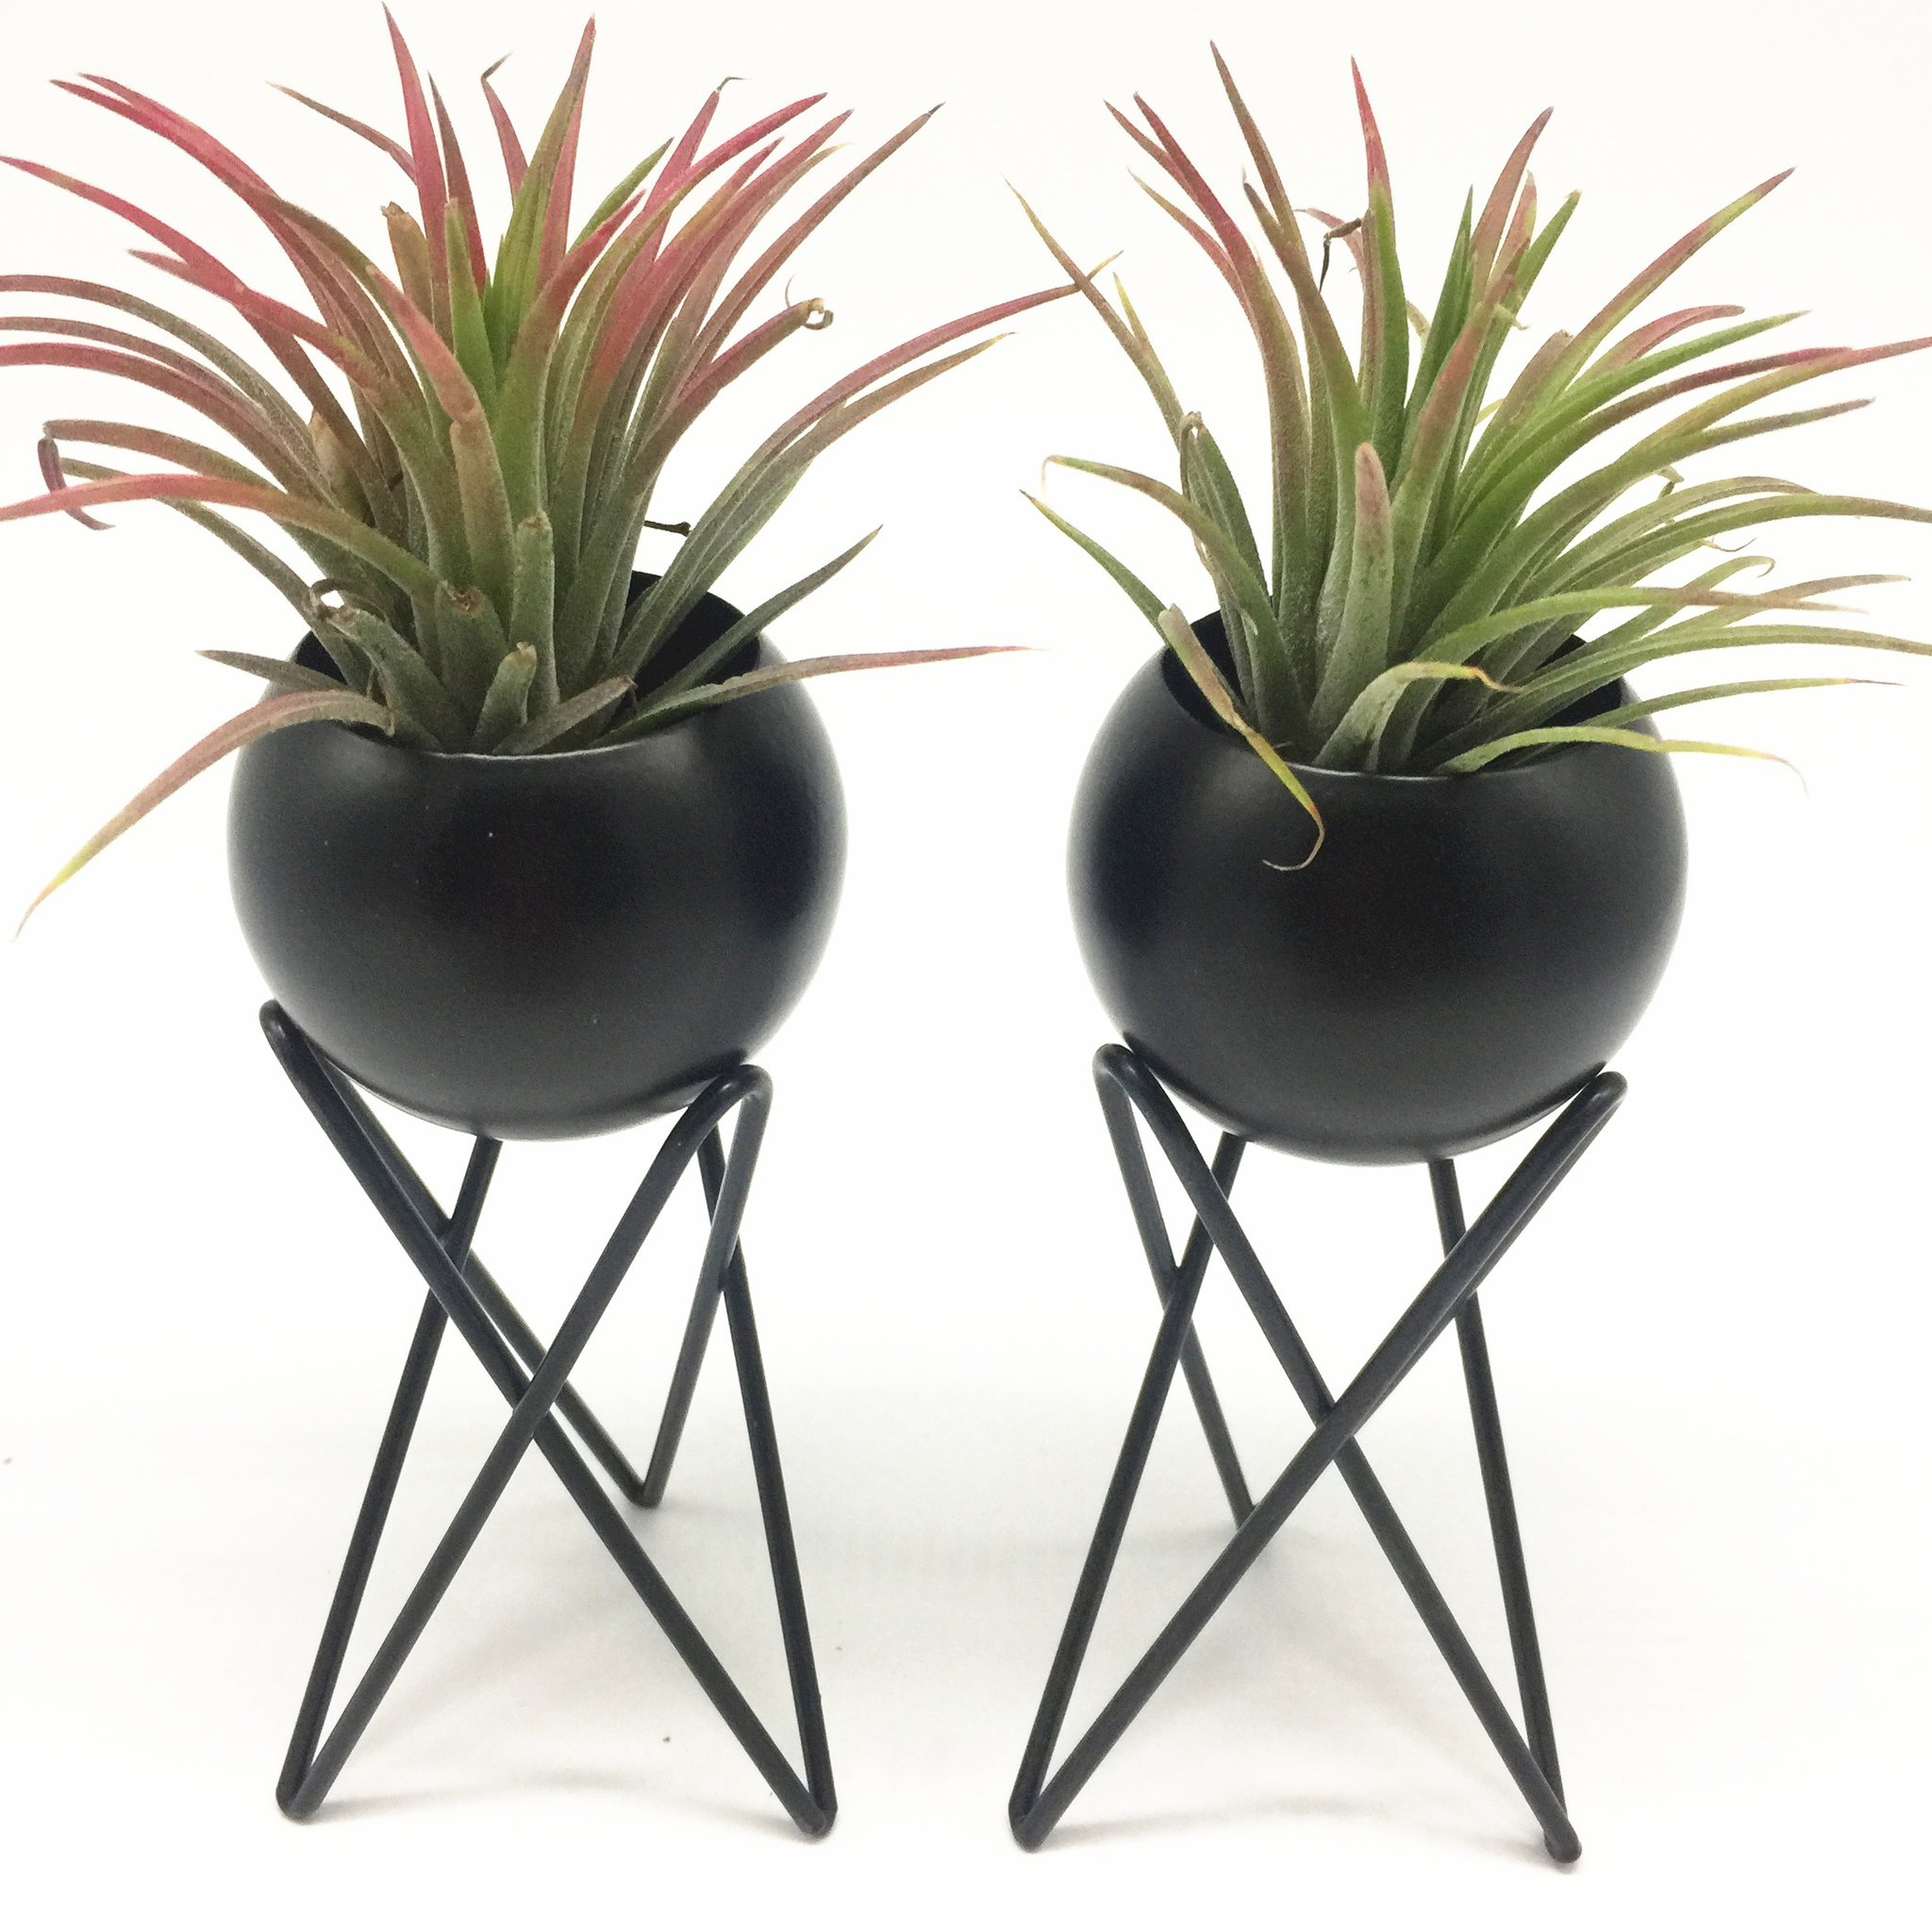 Set of 2 tabletop standing air plant holder air plant stand air plant container tillandsia holder